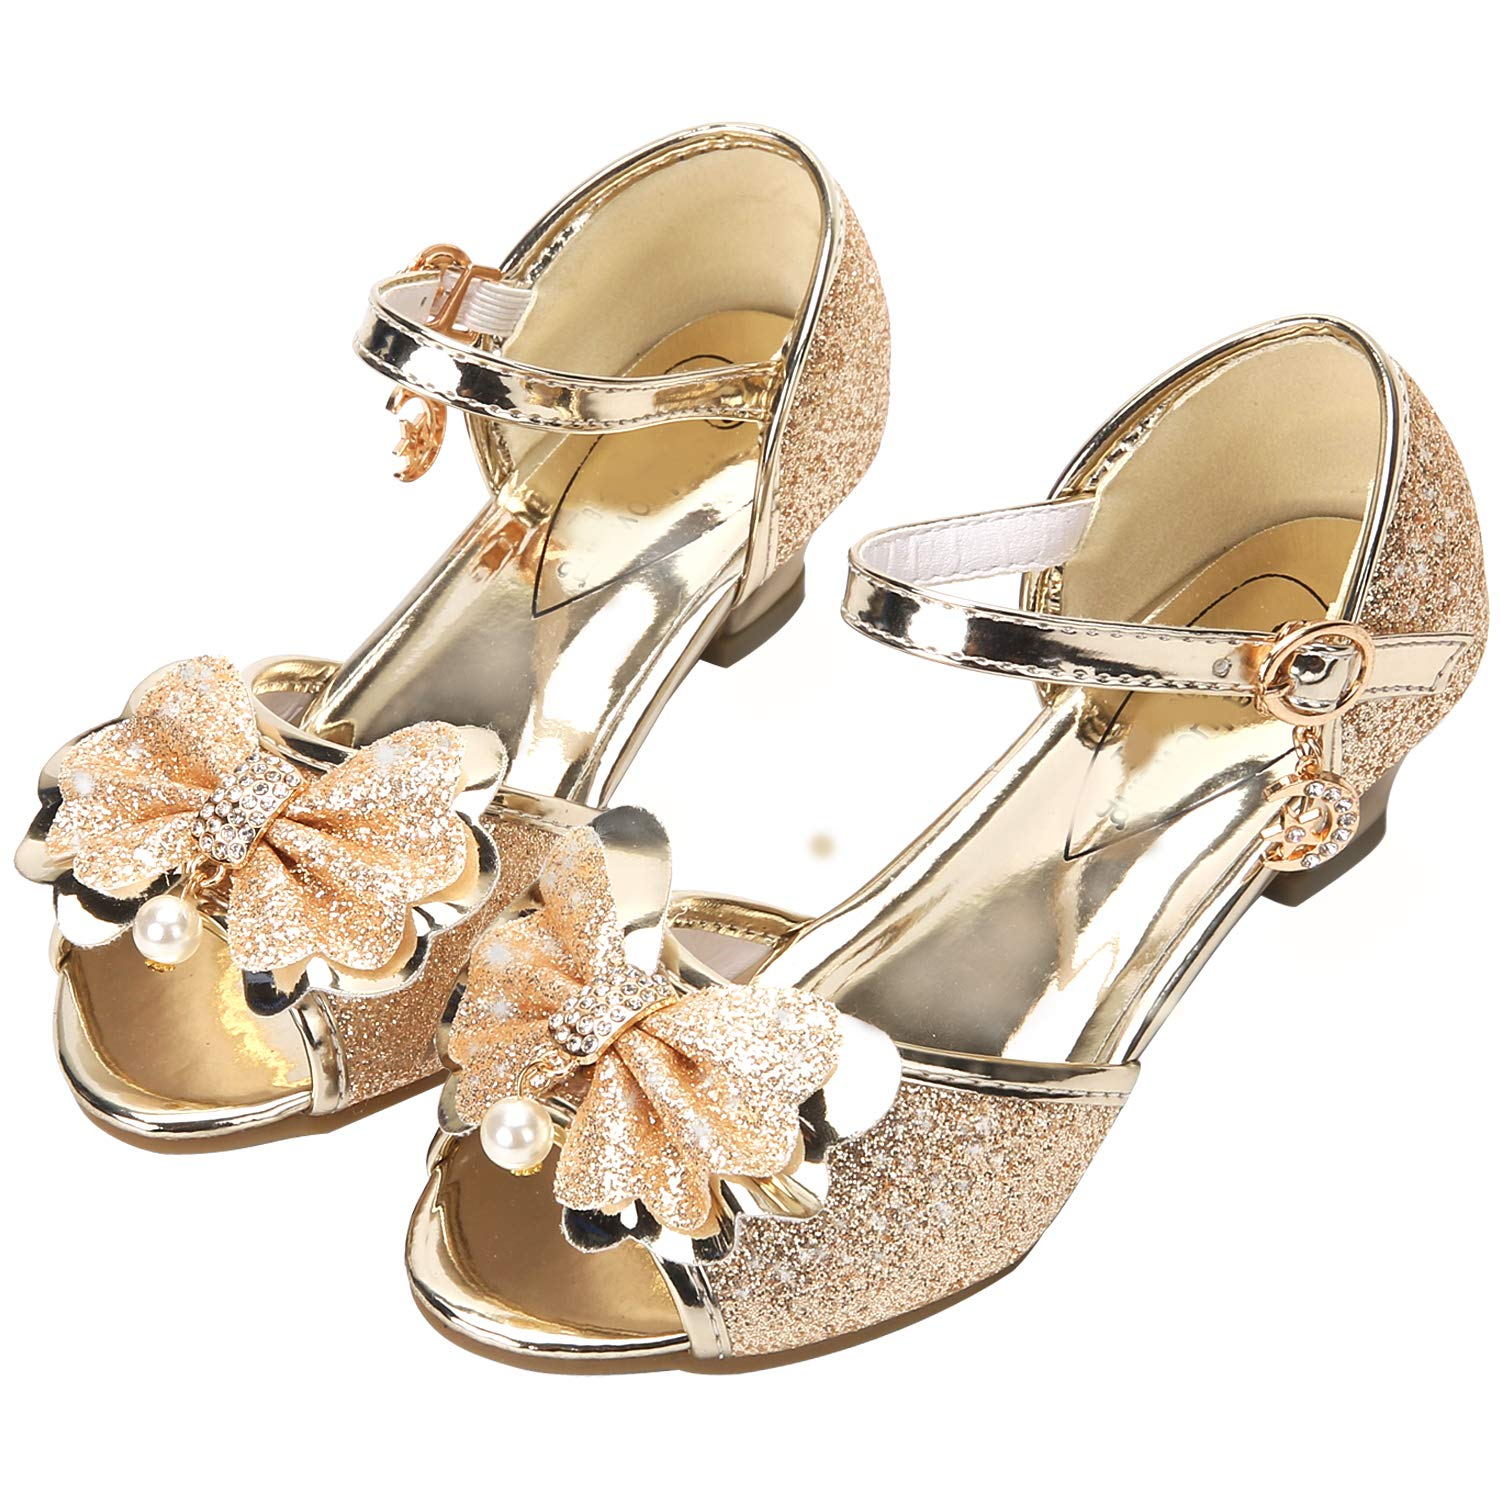 caa65616163 Osinnme FKKFYY Low Heel Sandals for Girls Light Gold Toddler Wedding ...